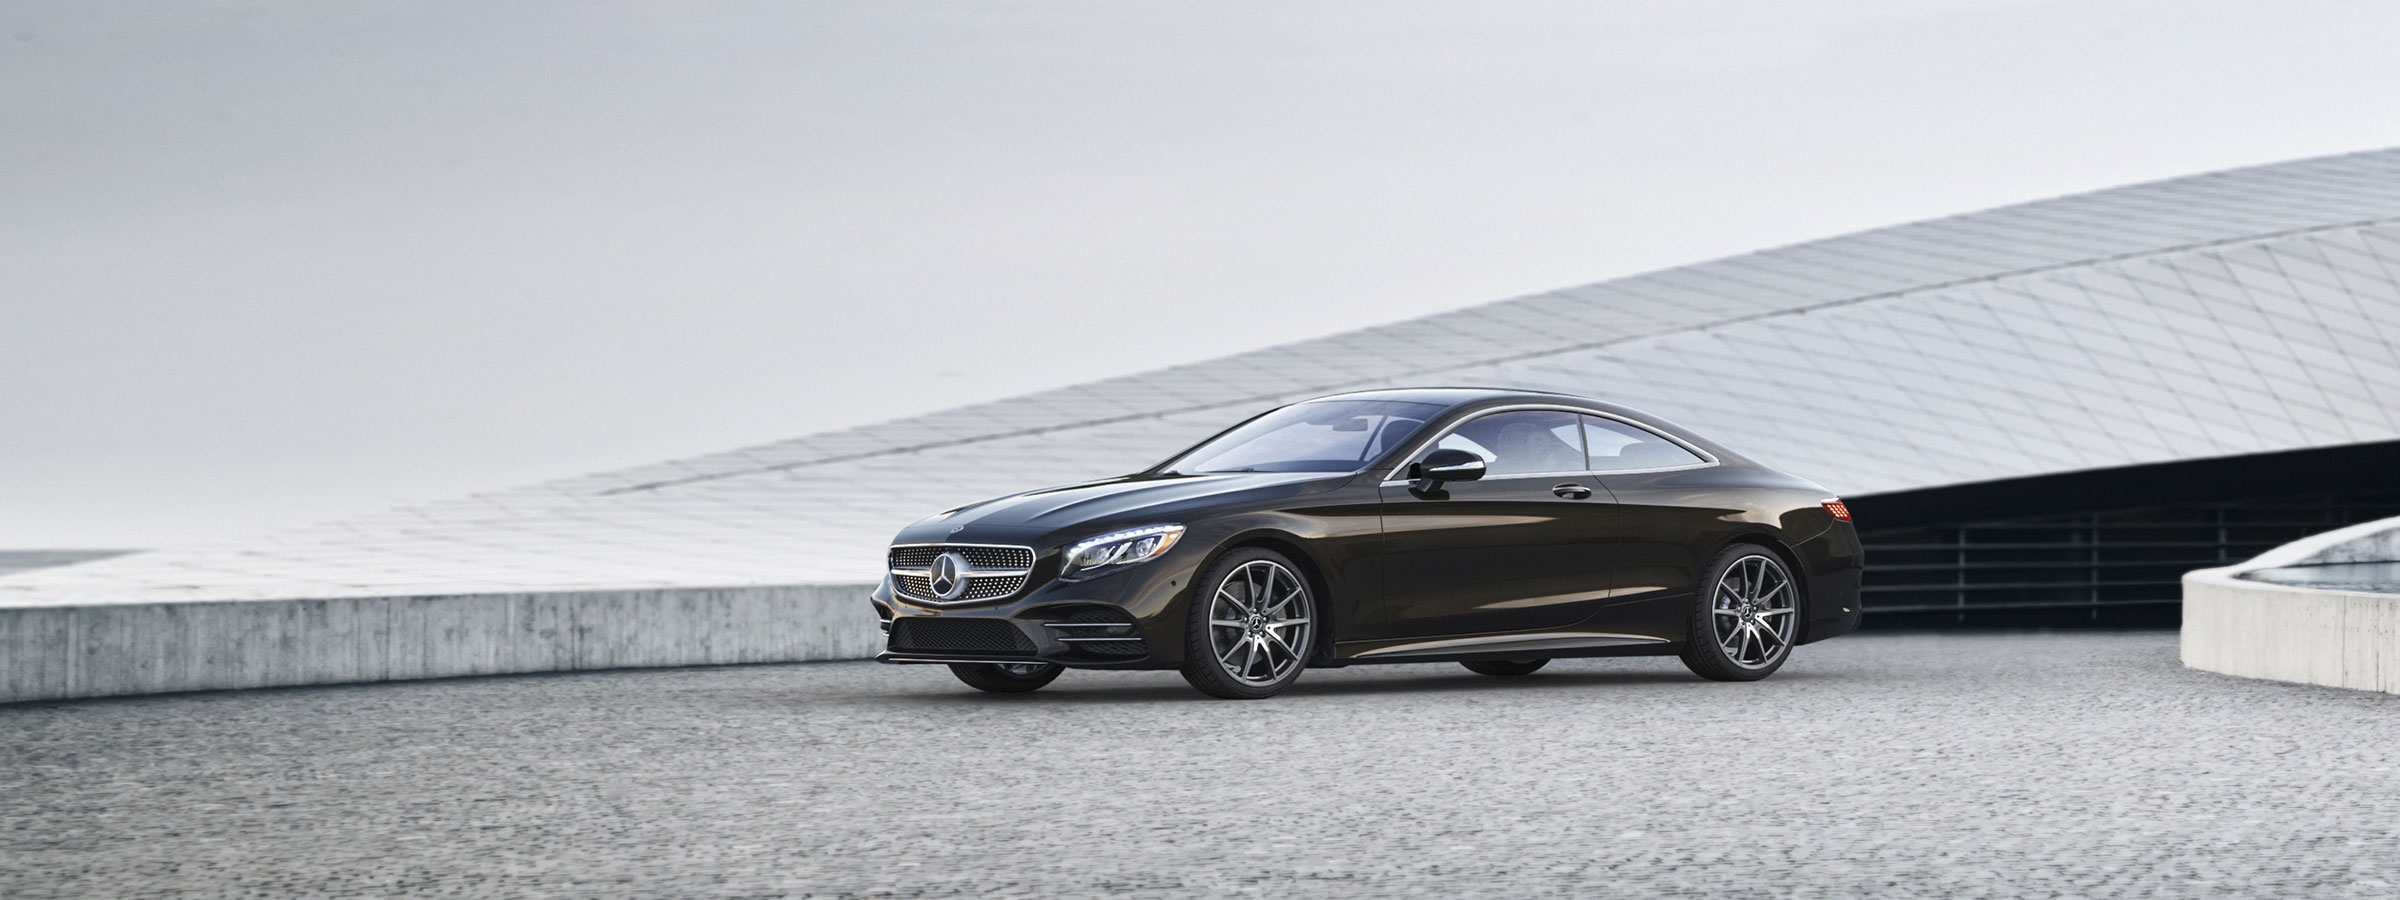 29 Concept of Mercedes S Class Coupe 2019 Interior for Mercedes S Class Coupe 2019